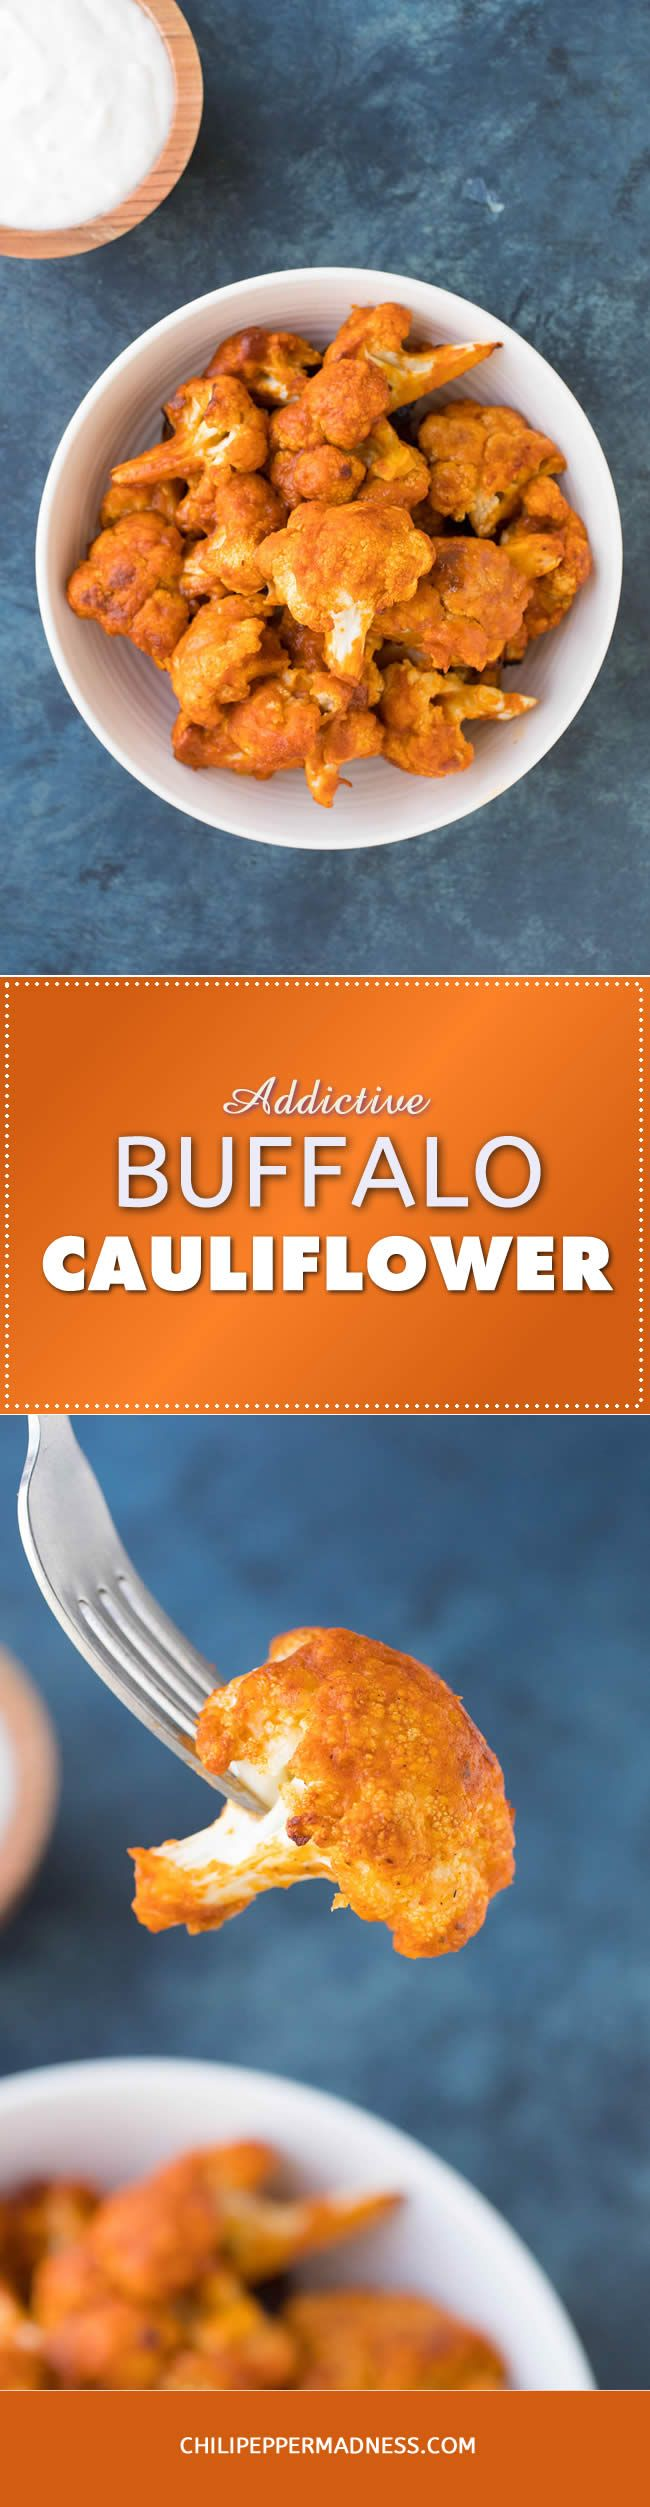 Addictive Buffalo Cauliflower - A recipe for cauliflower florets dipped in seasoned batter, baked, then drizzled with spicy Buffalo hot sauce, served with blue cheese dip. Make these for your next appetizer or party. Beware! They are rather addictive.